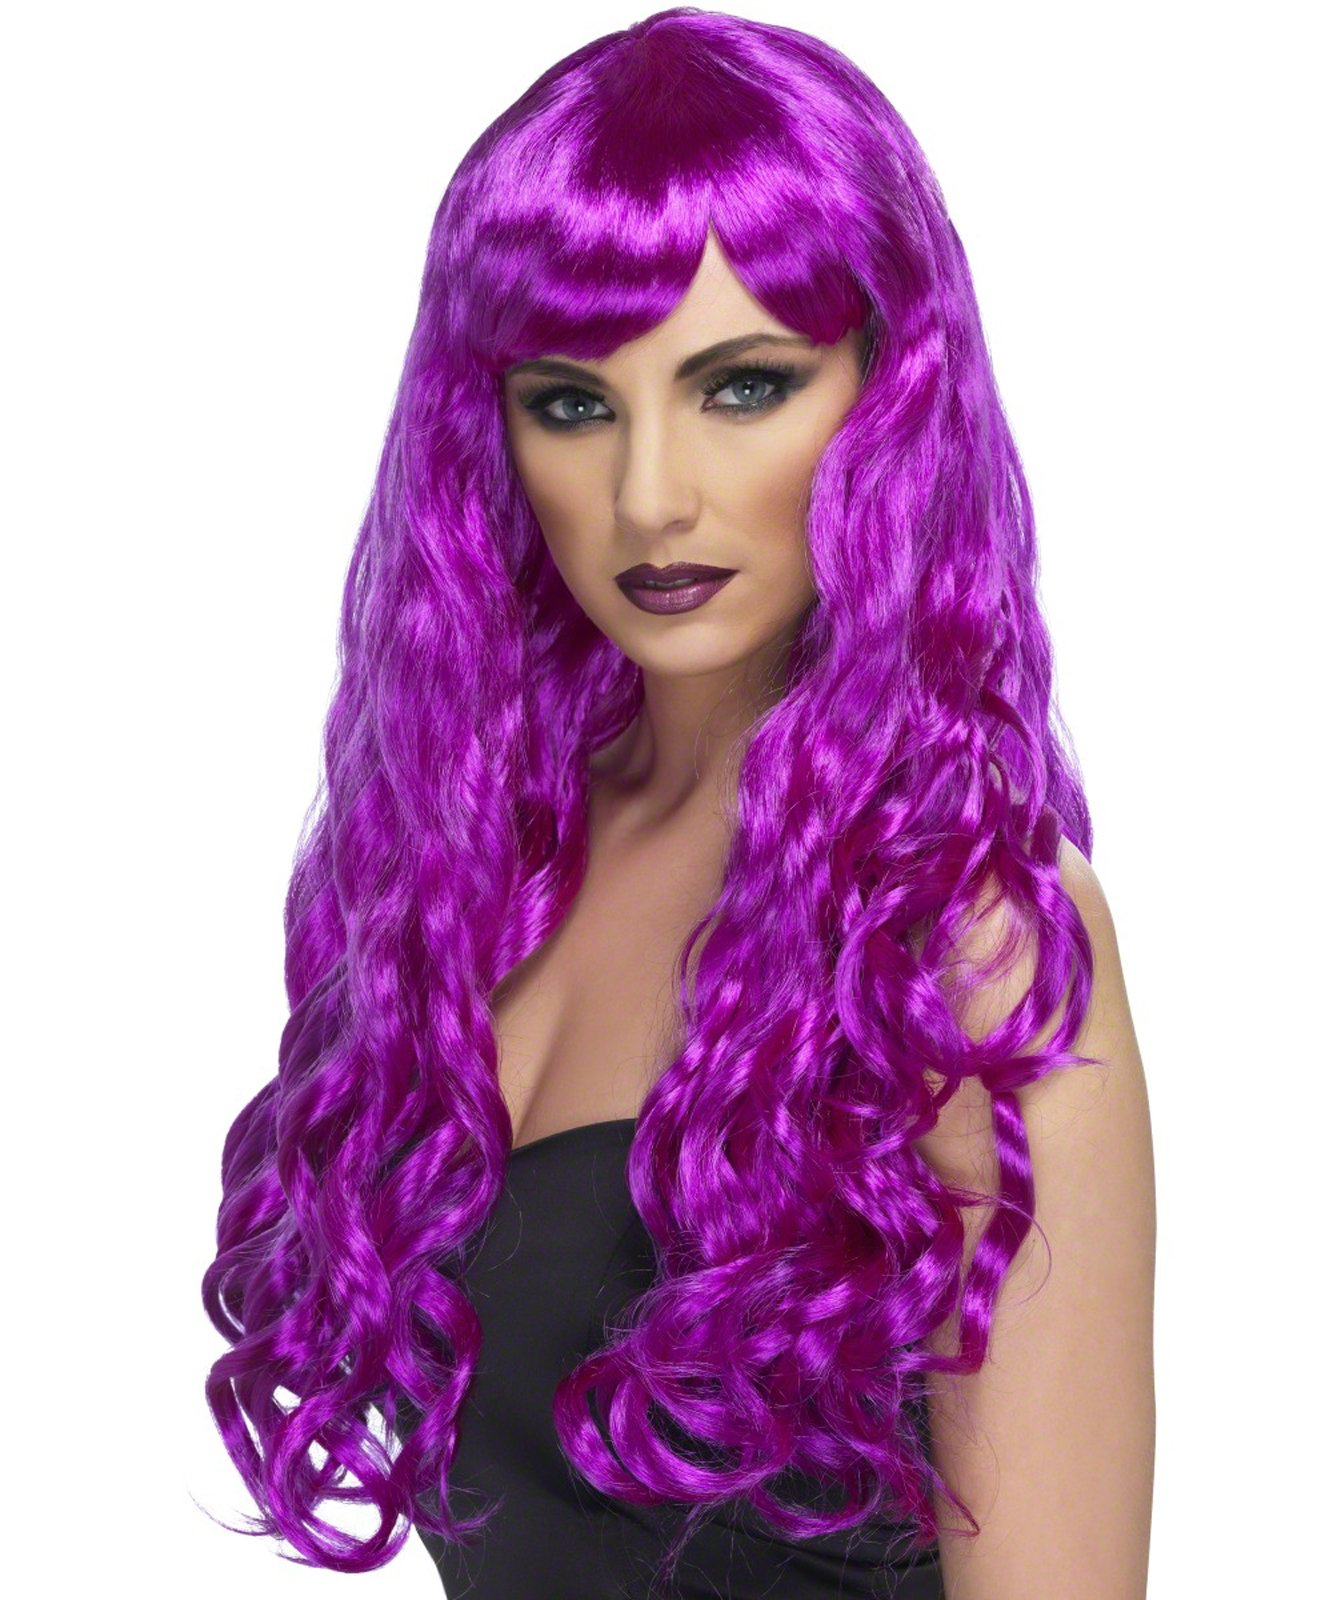 Desire (Purple) Adult Wig